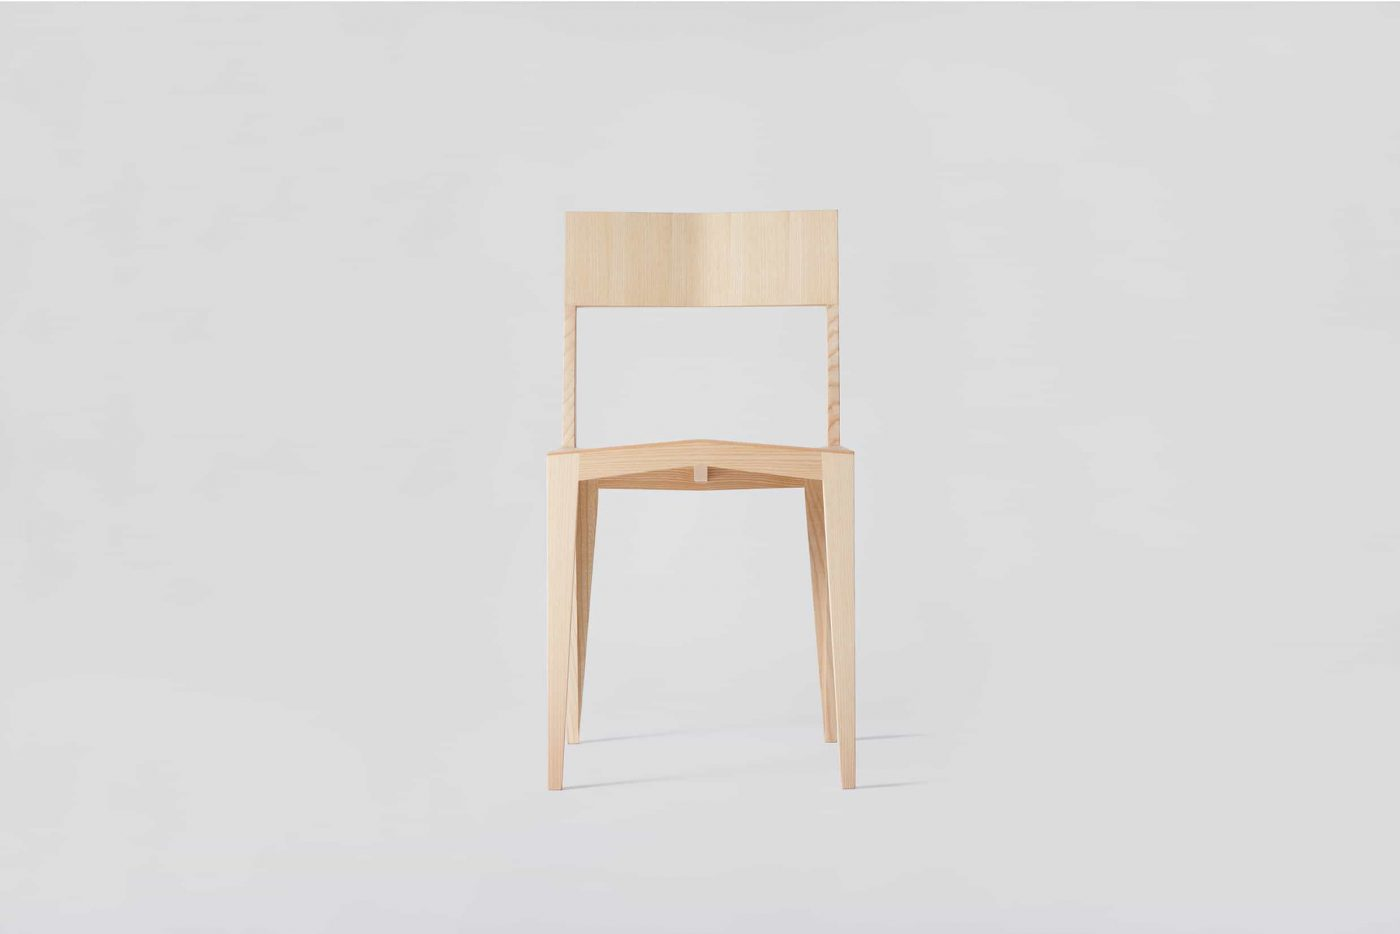 MYKILOS CHAIR 3 NATURAL ASH 05